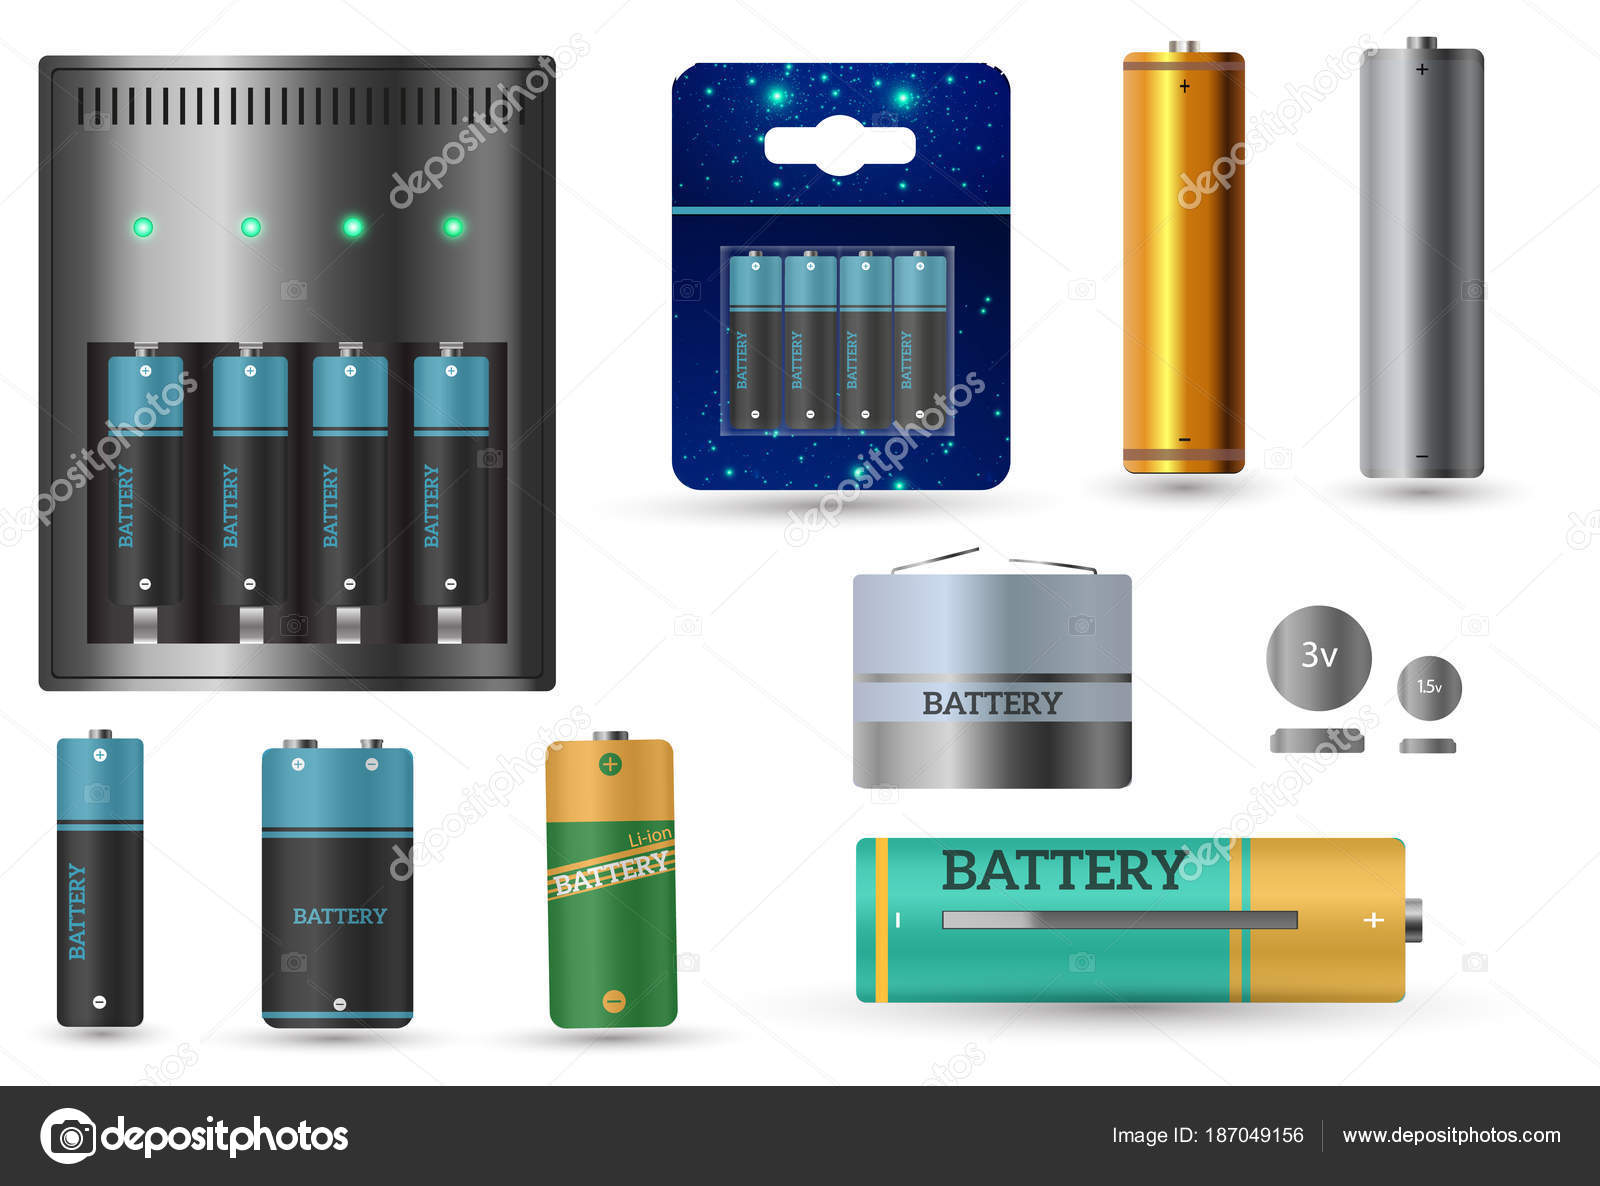 What are battery batteries finger, and what is it 3